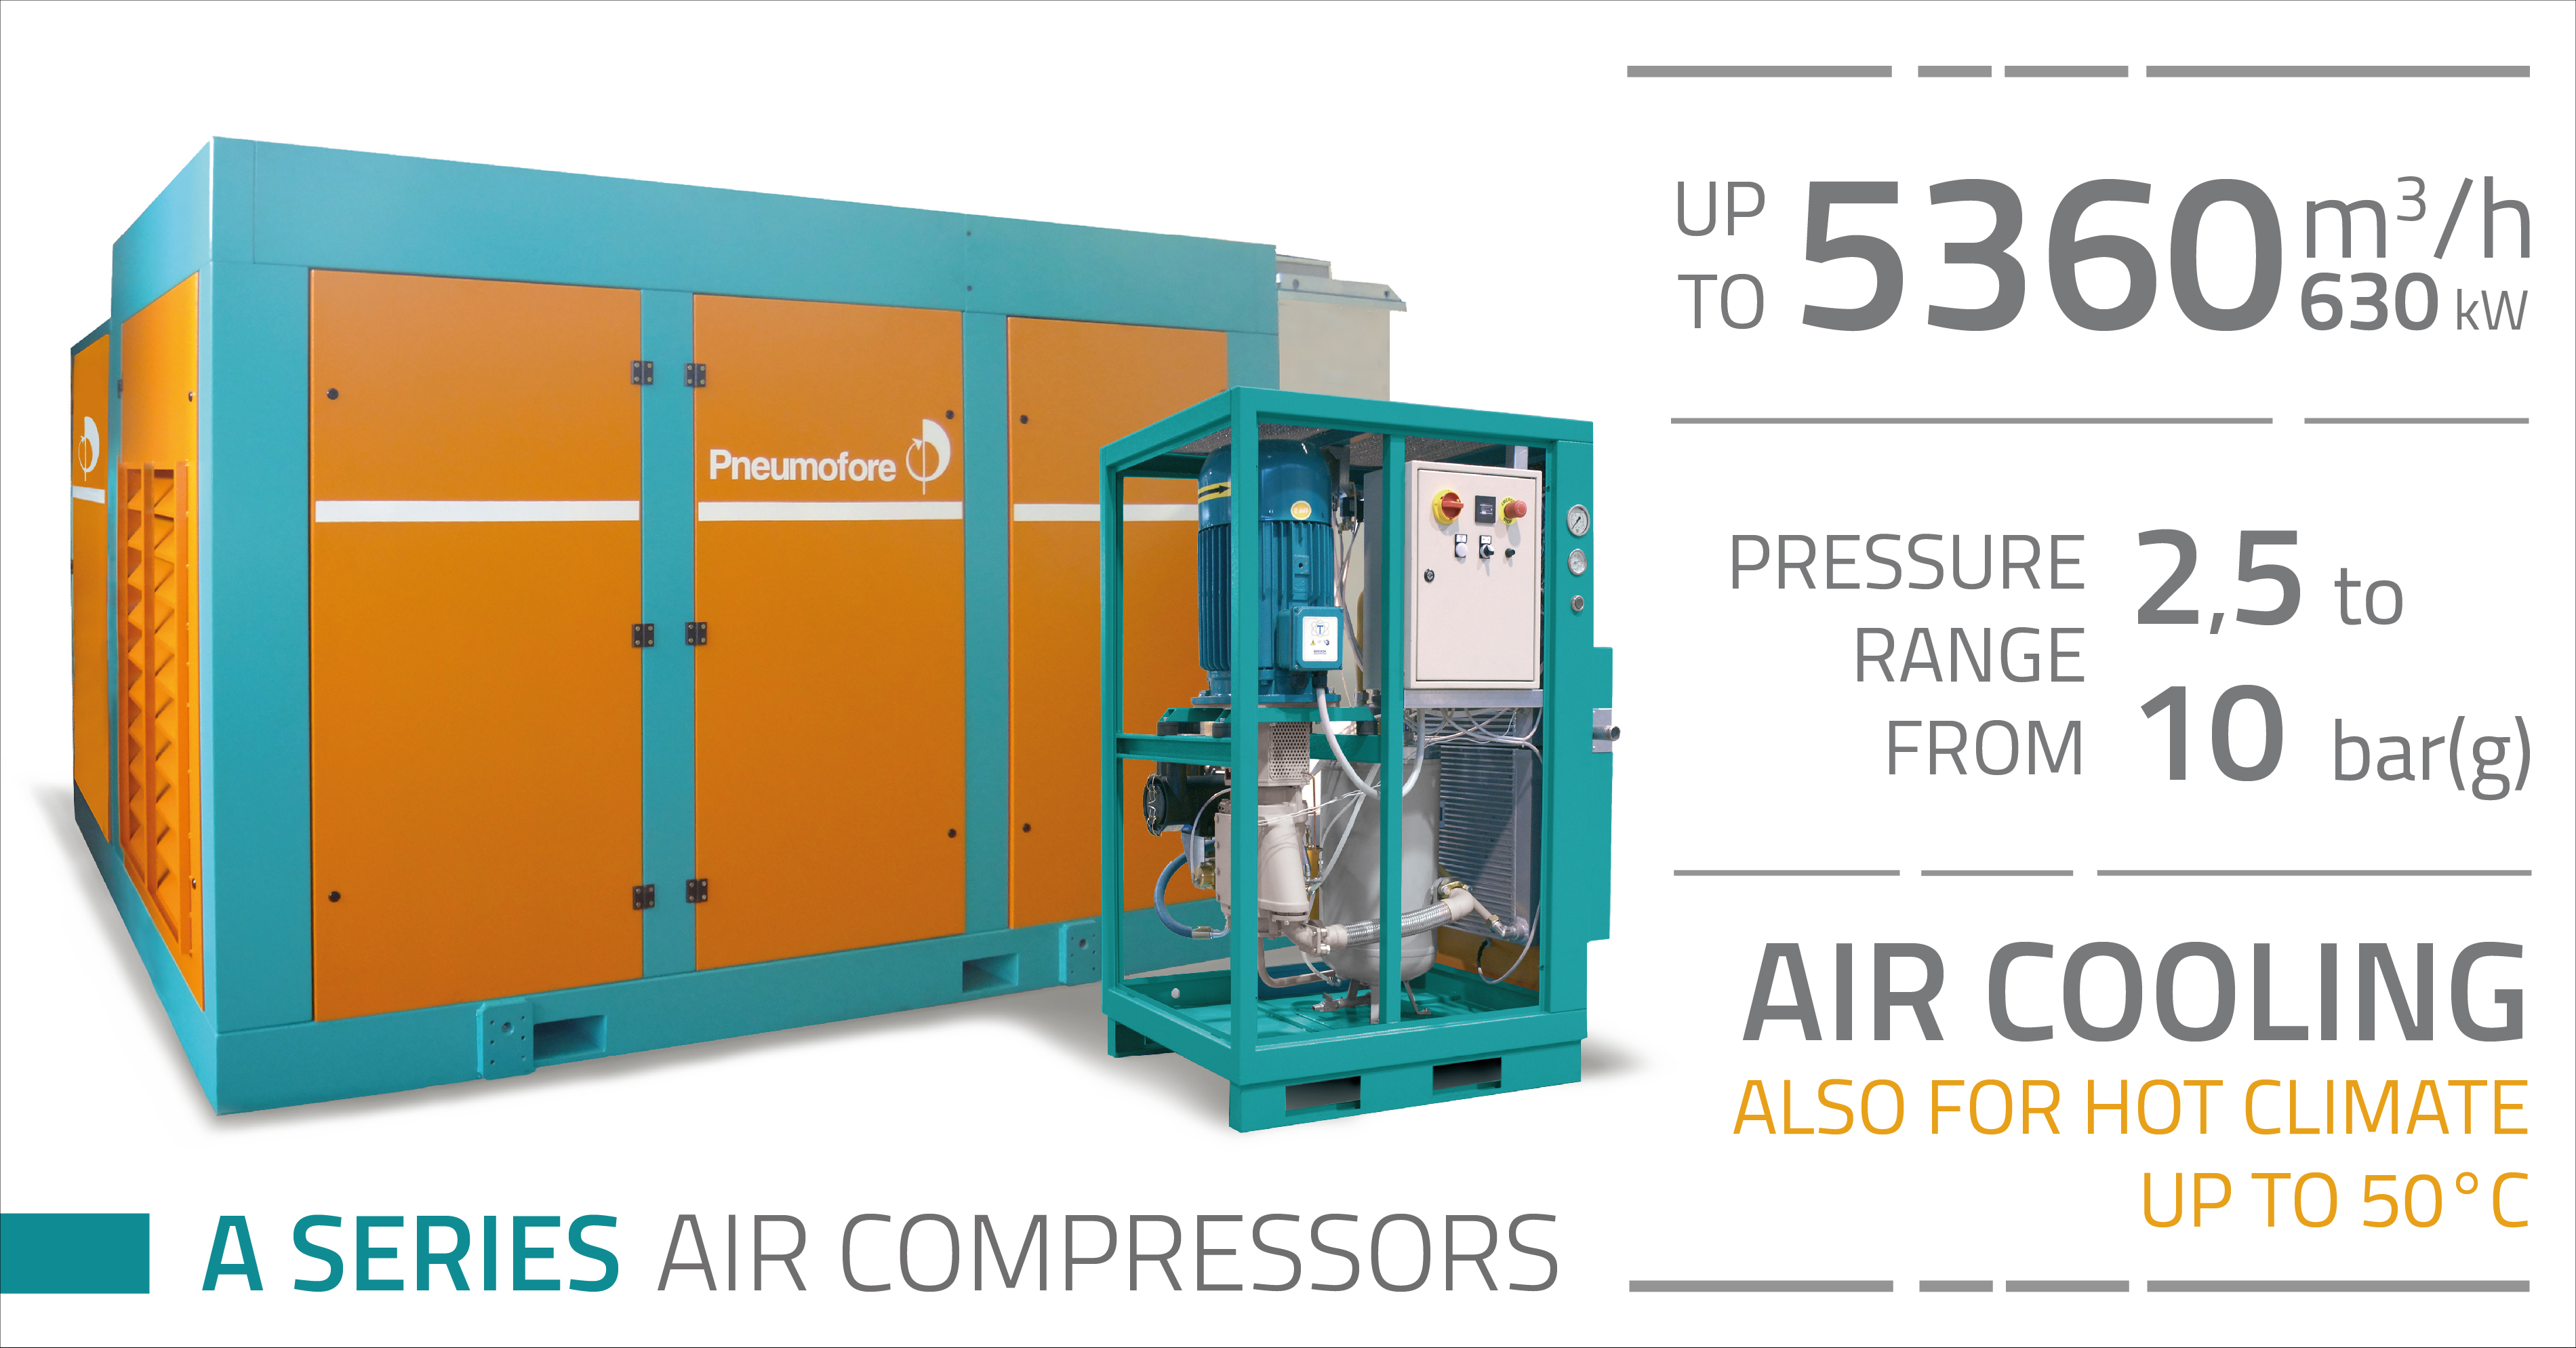 Pneumofore Rotary Vane Air Compressors - A Series